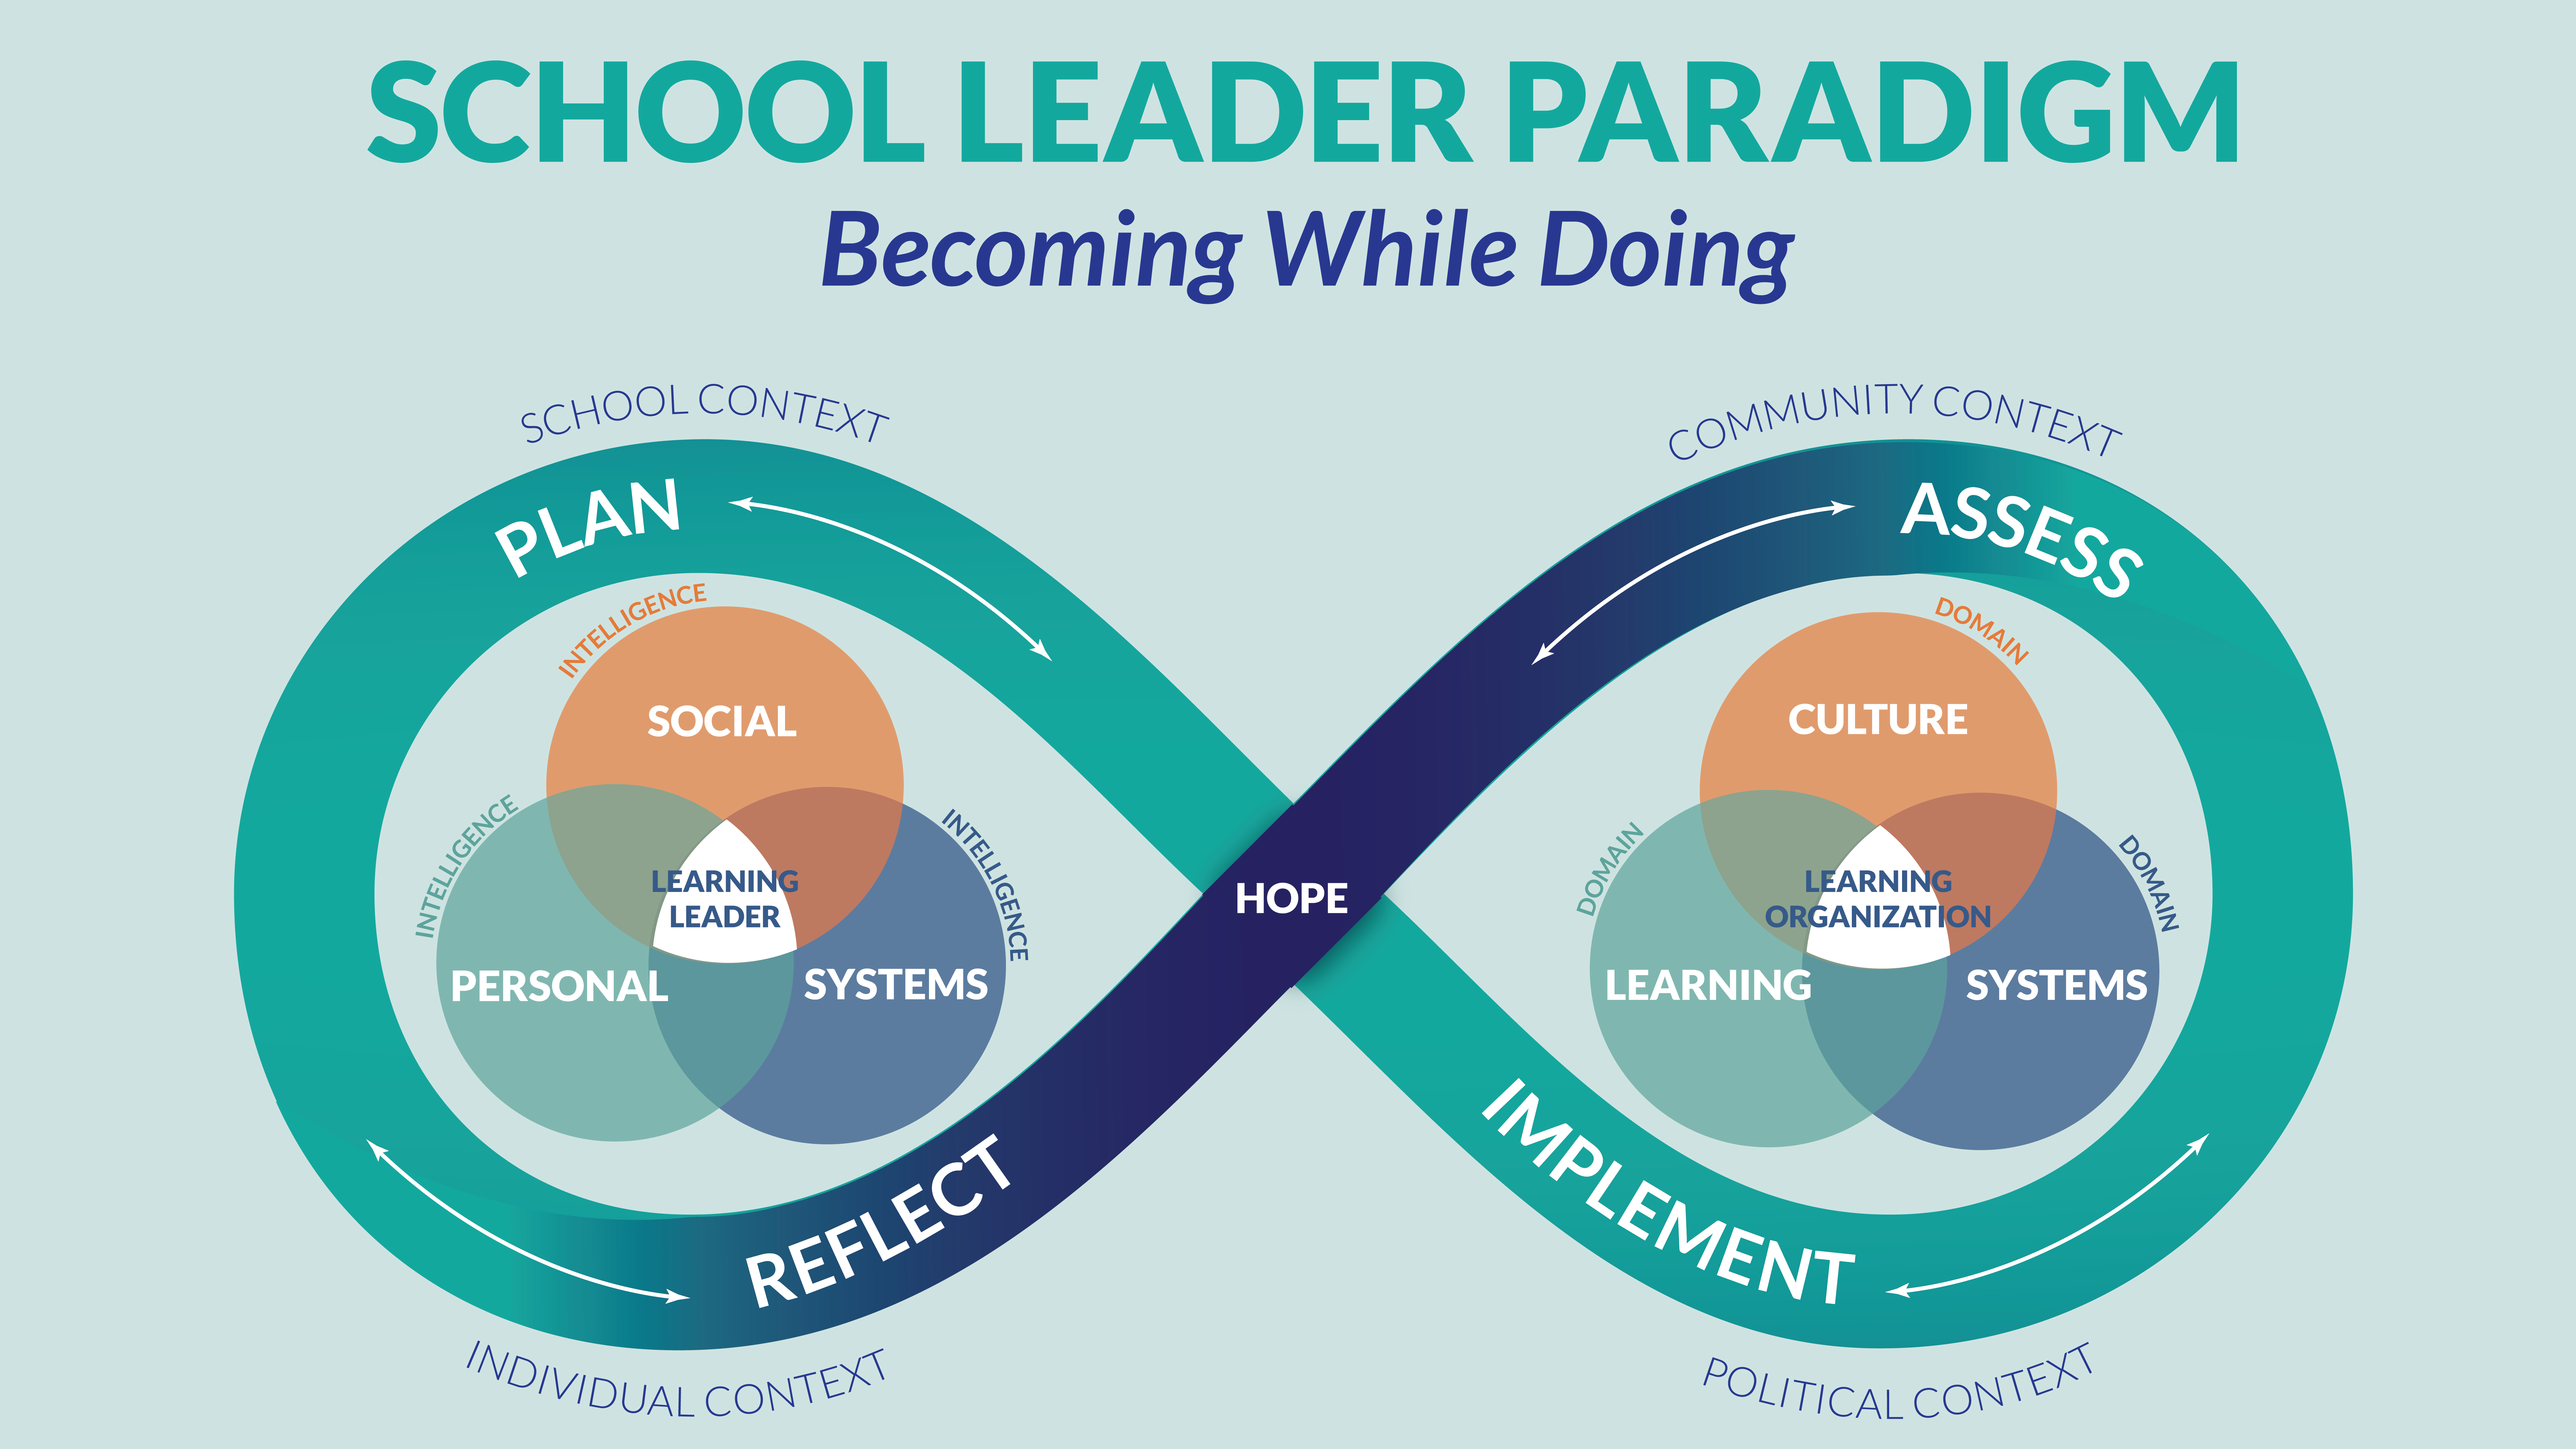 School_Leader_Paradigm_2.0_16.9